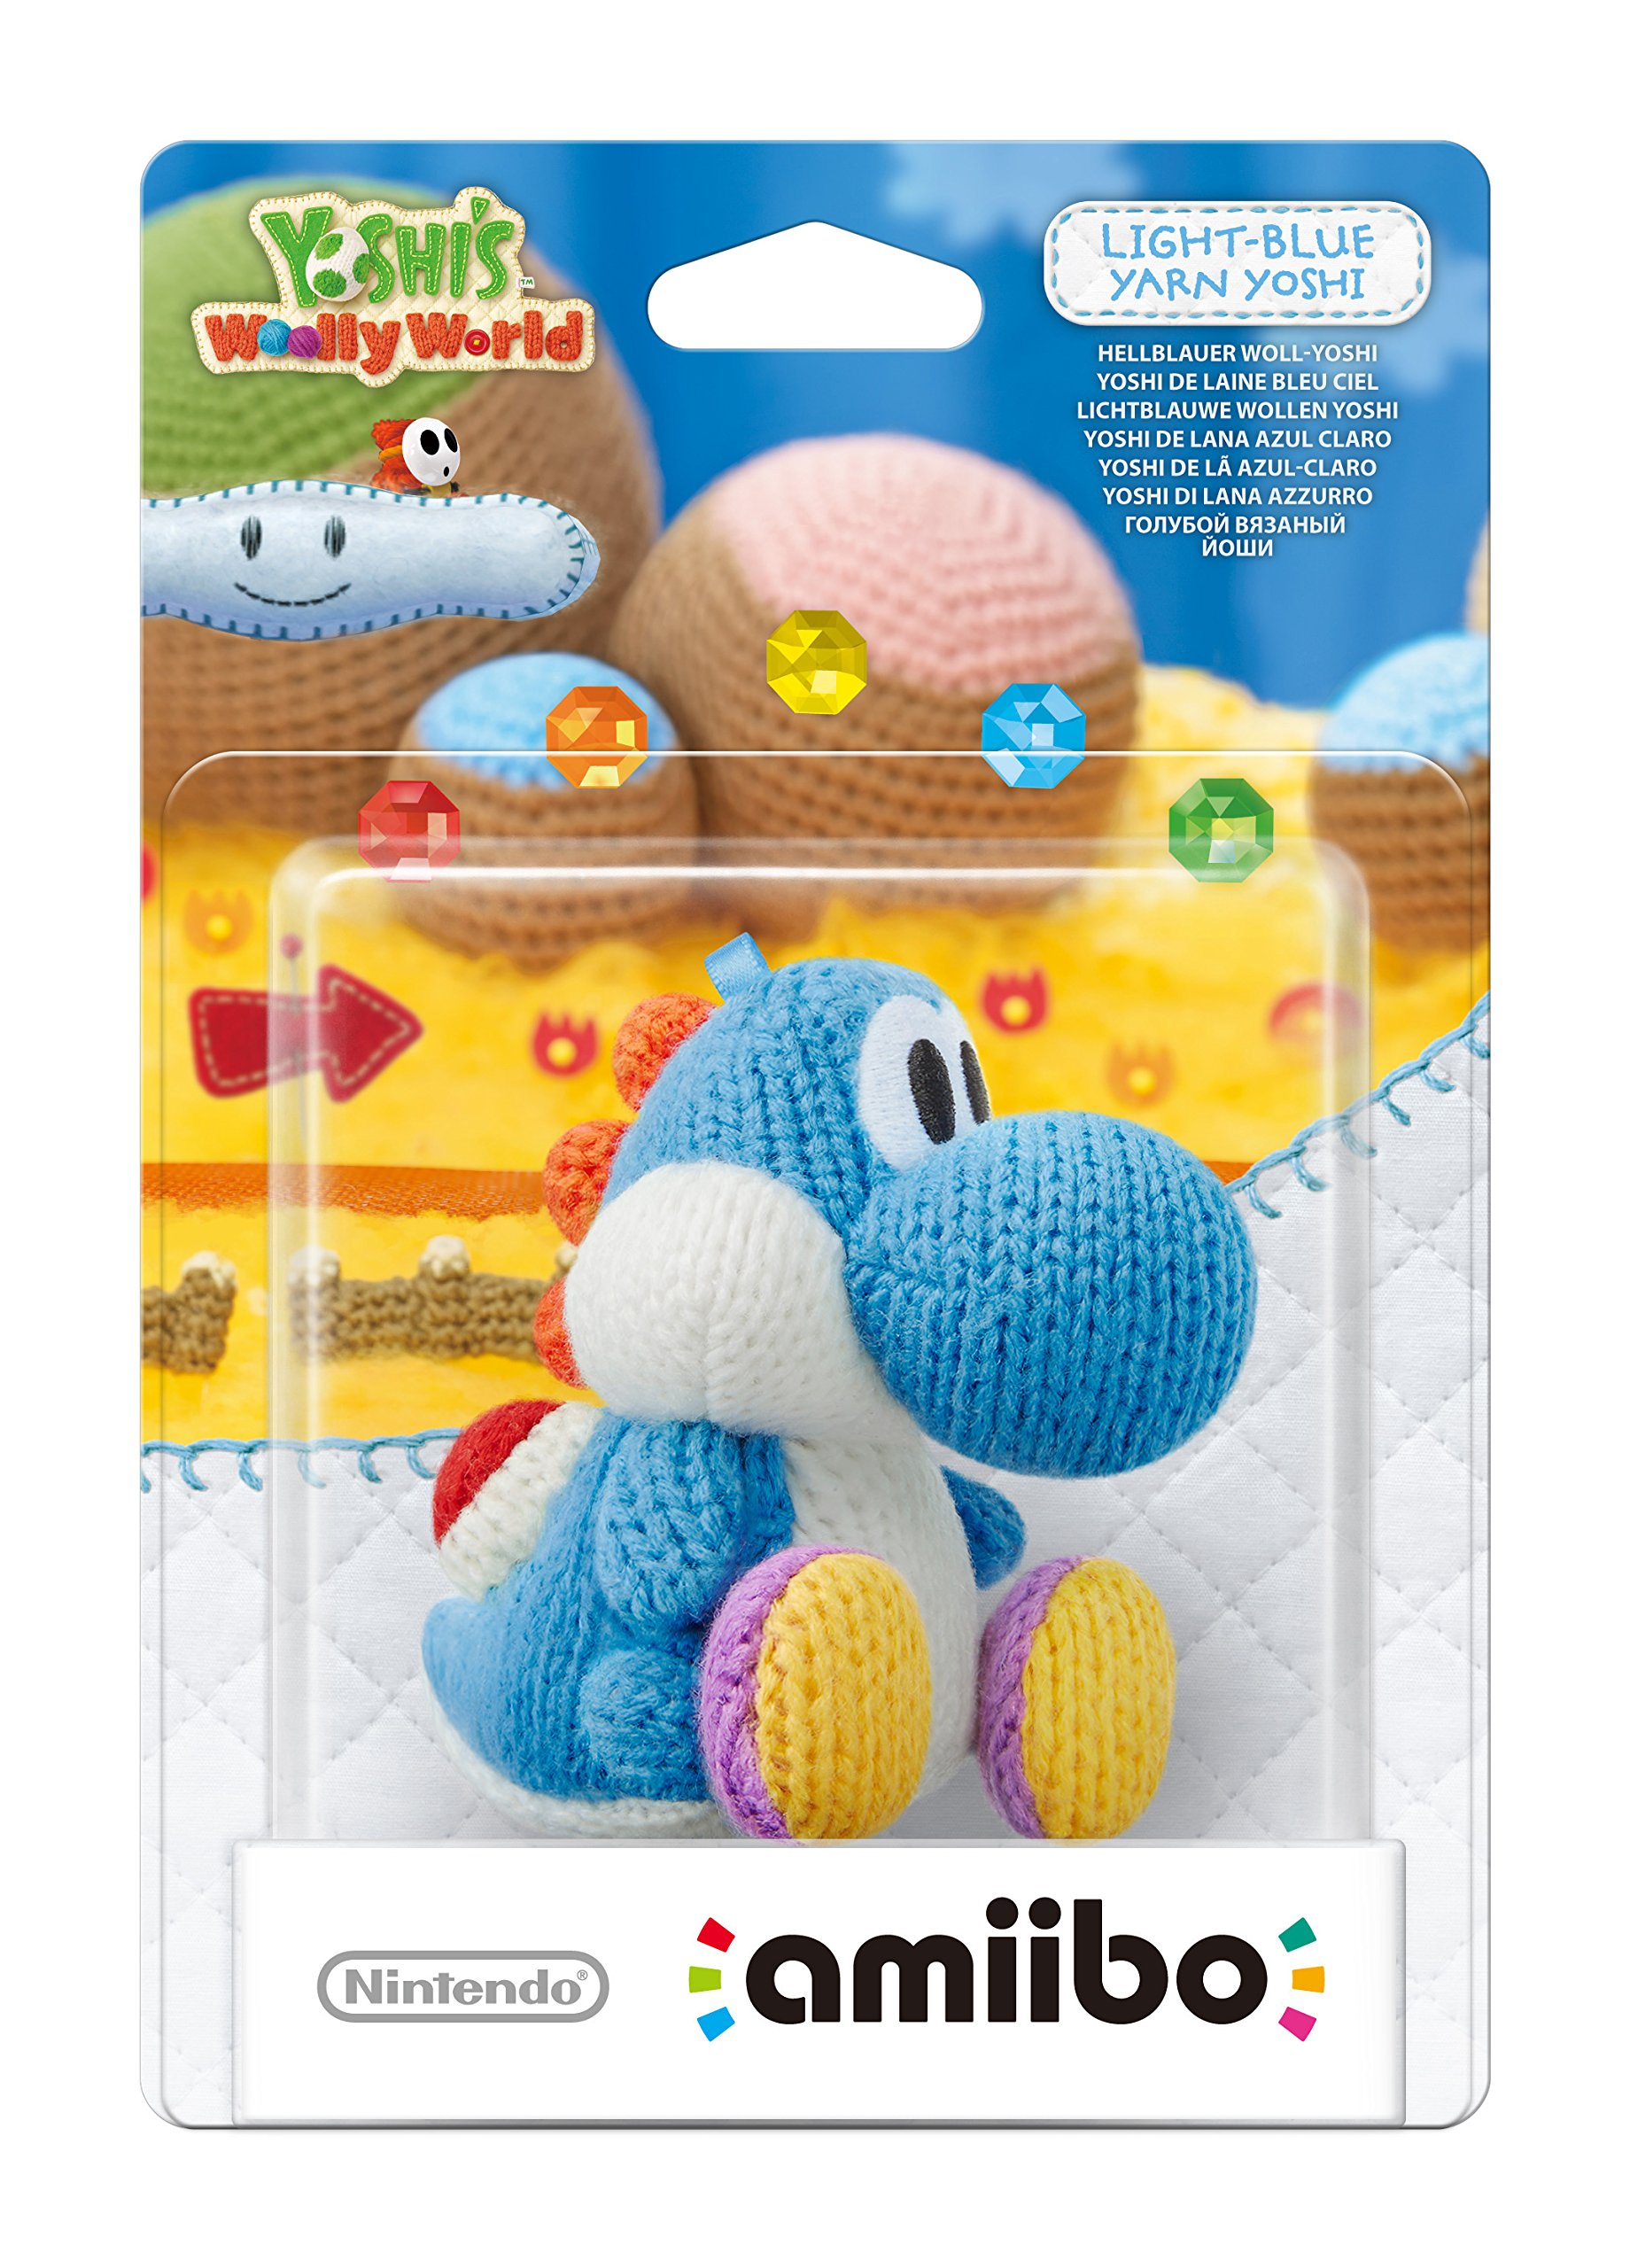 Light Blue Yarn Yoshi amiibo (Nintendo Wii U/3DS)